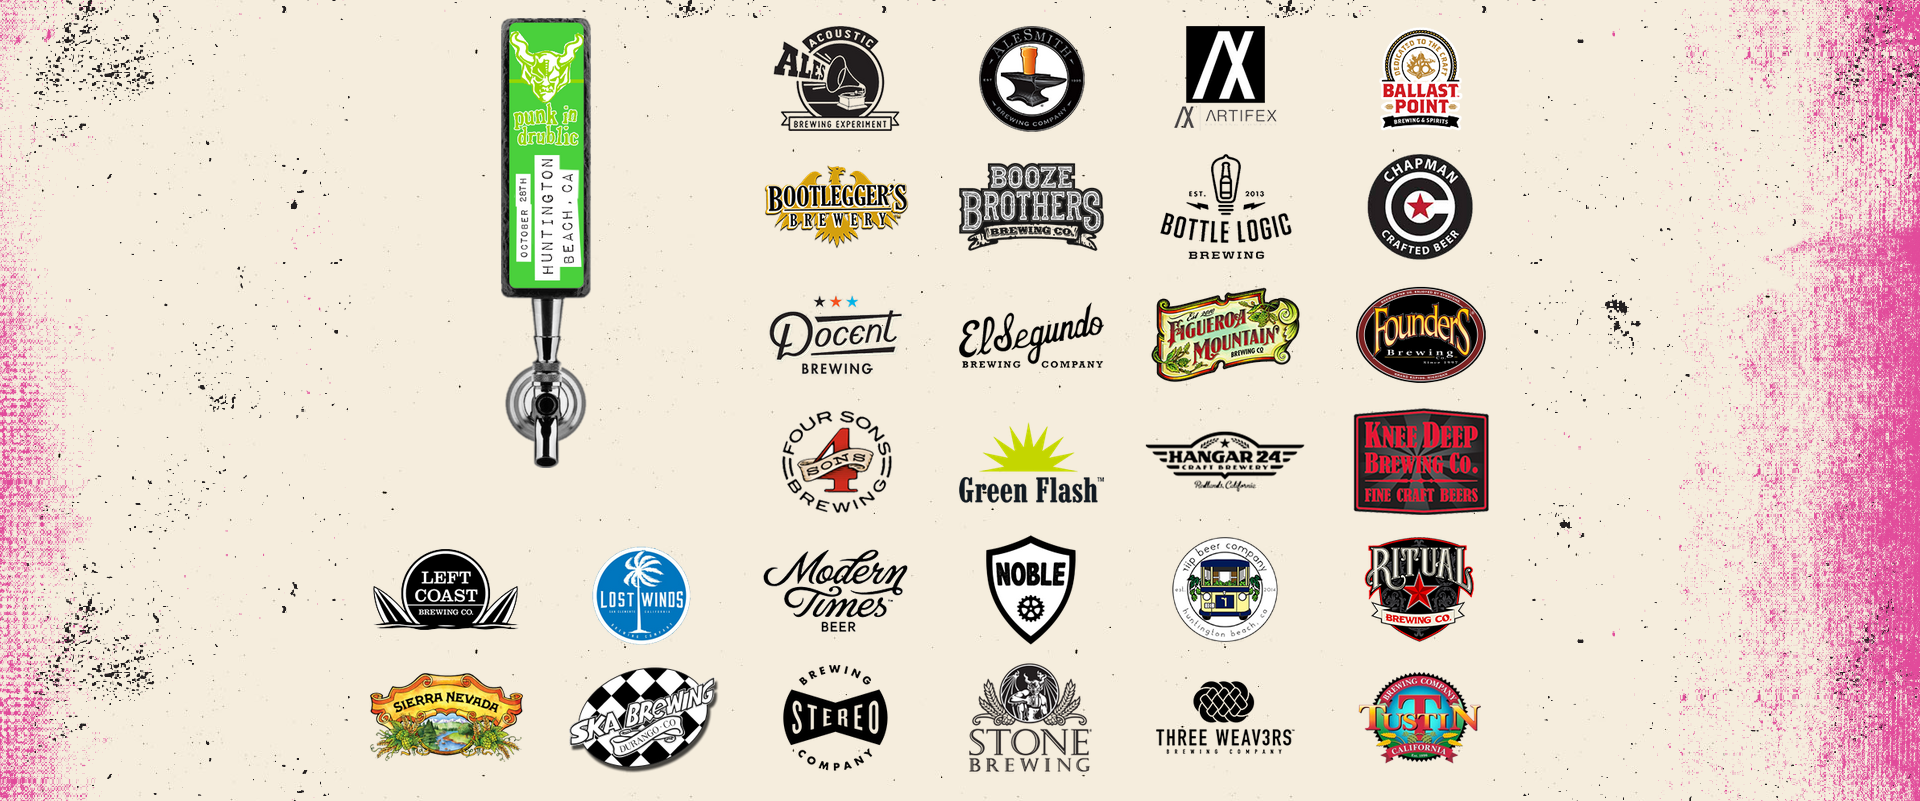 Some of the participating breweries.